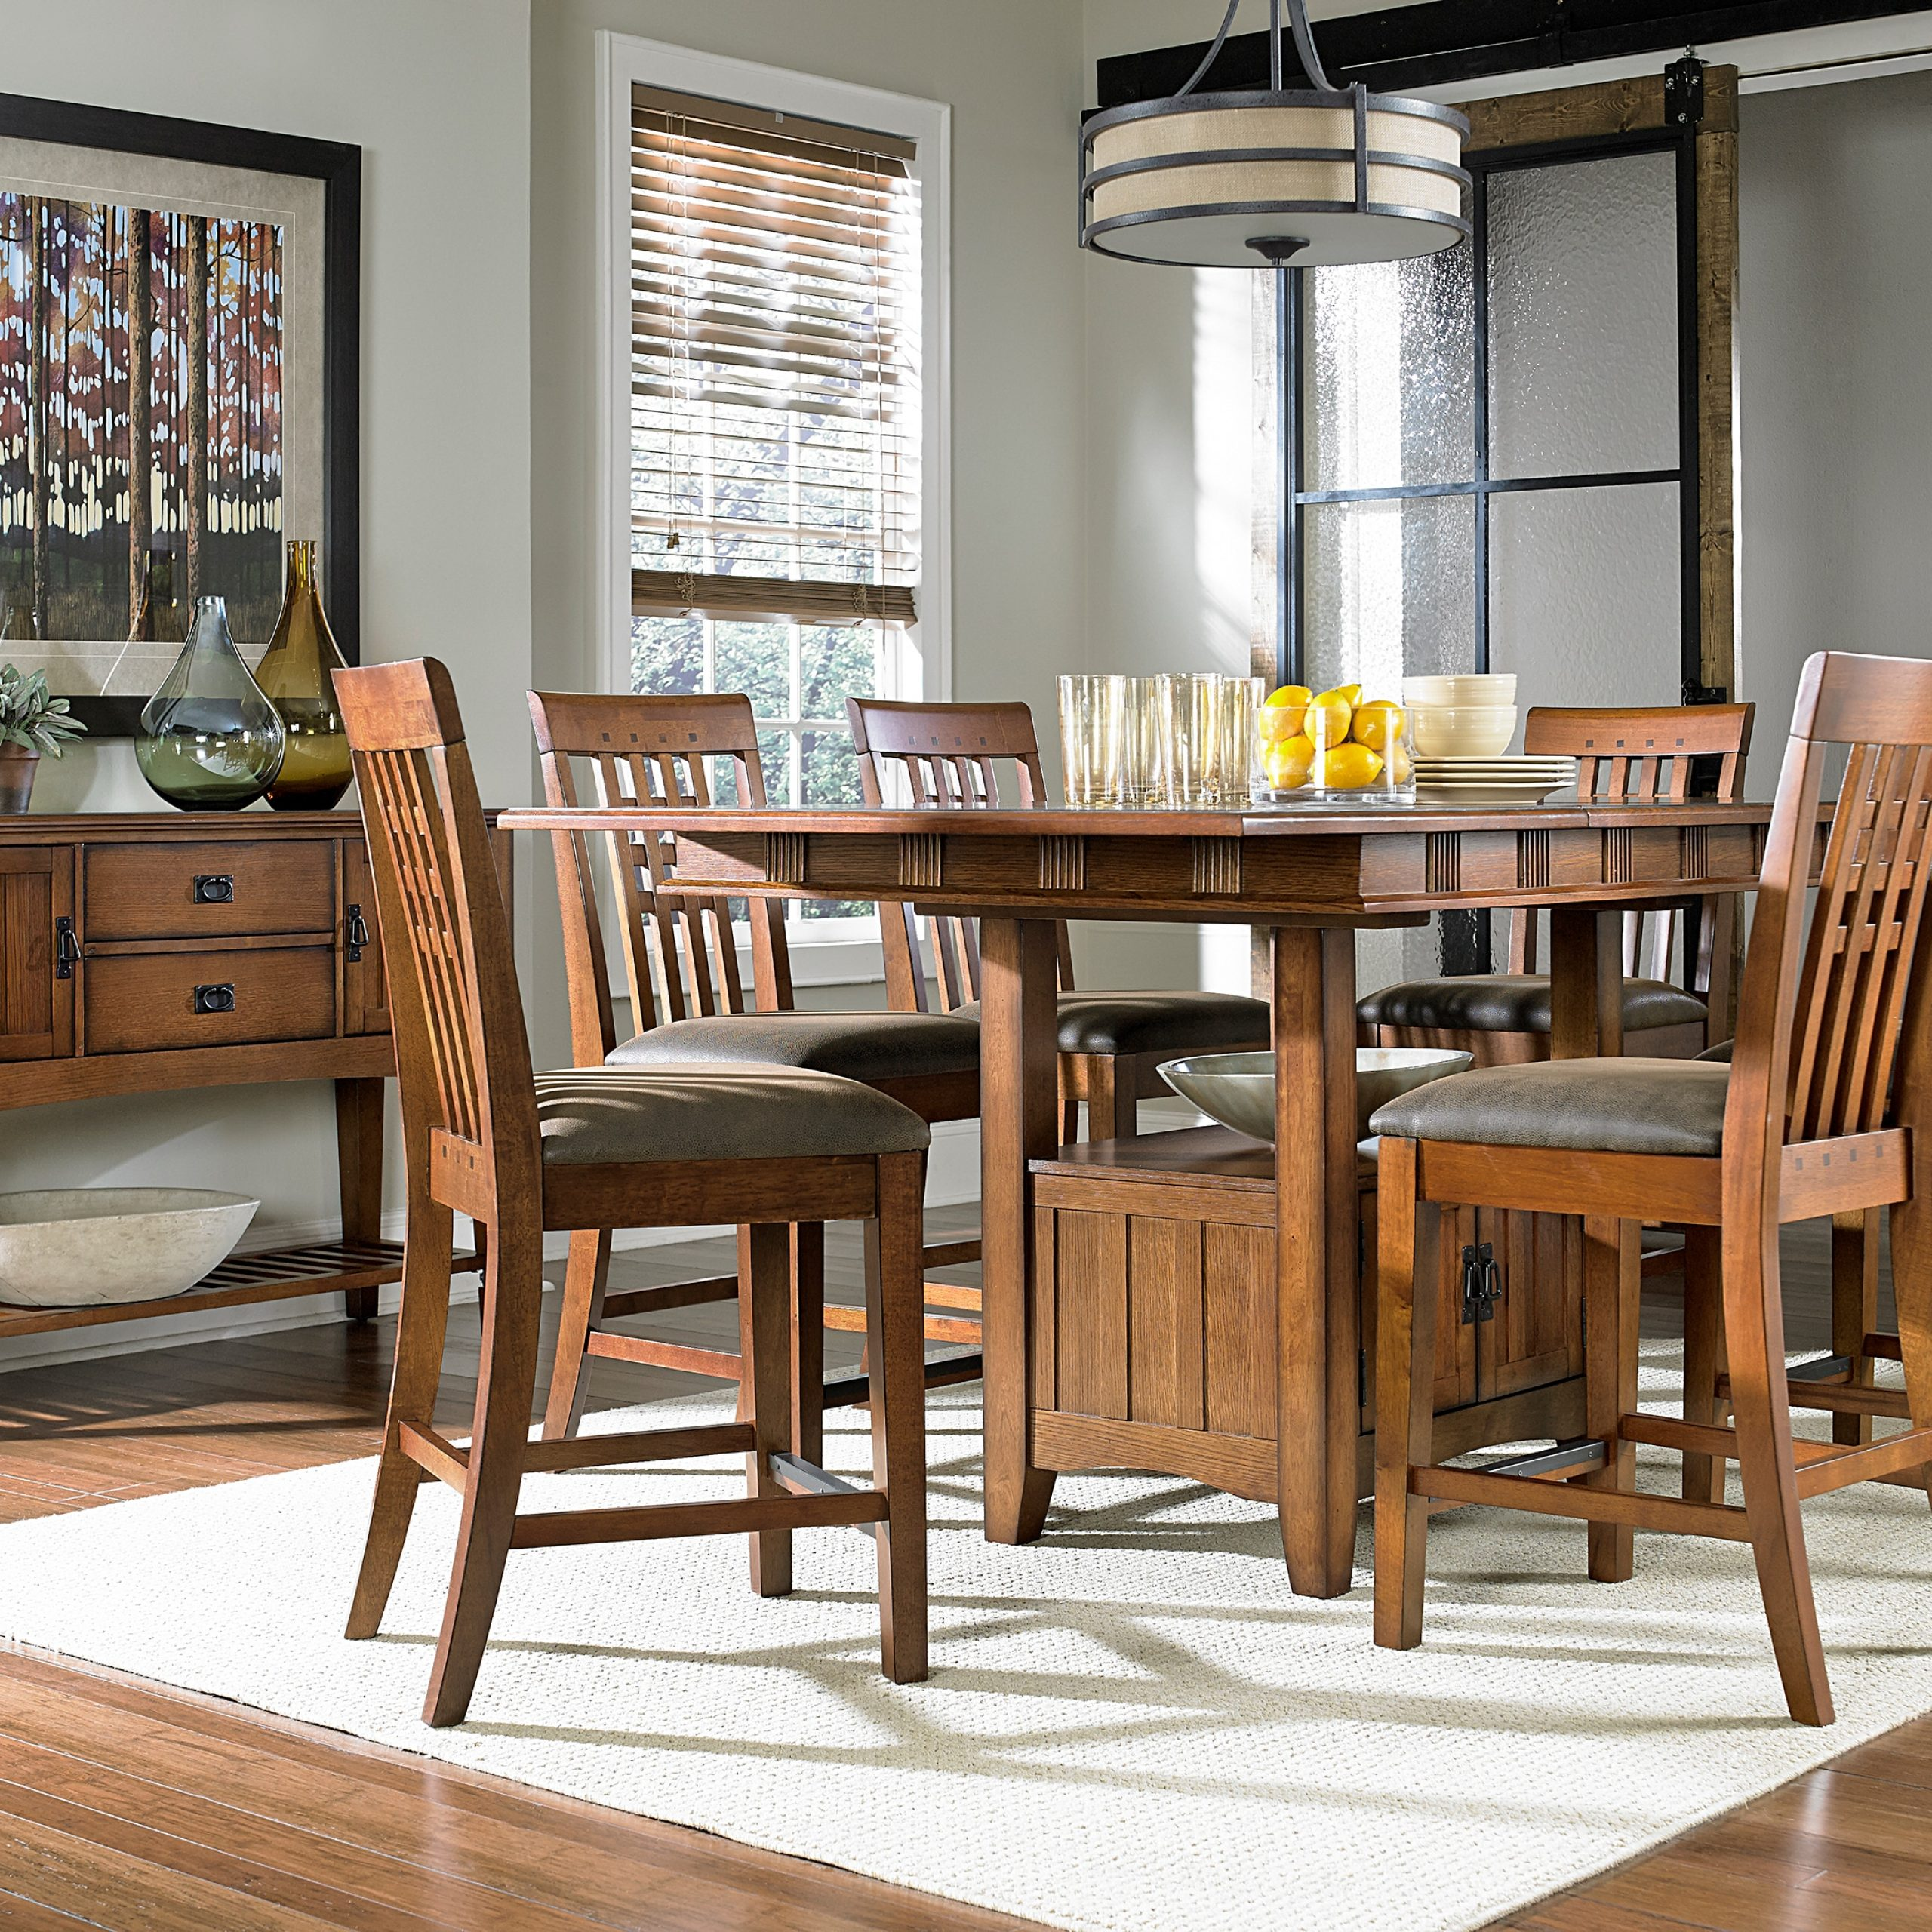 Oak Park Counter Height Table And Four Stools – Oak Throughout 2018 Lucy Bar Height Dining Tables (Image 23 of 25)